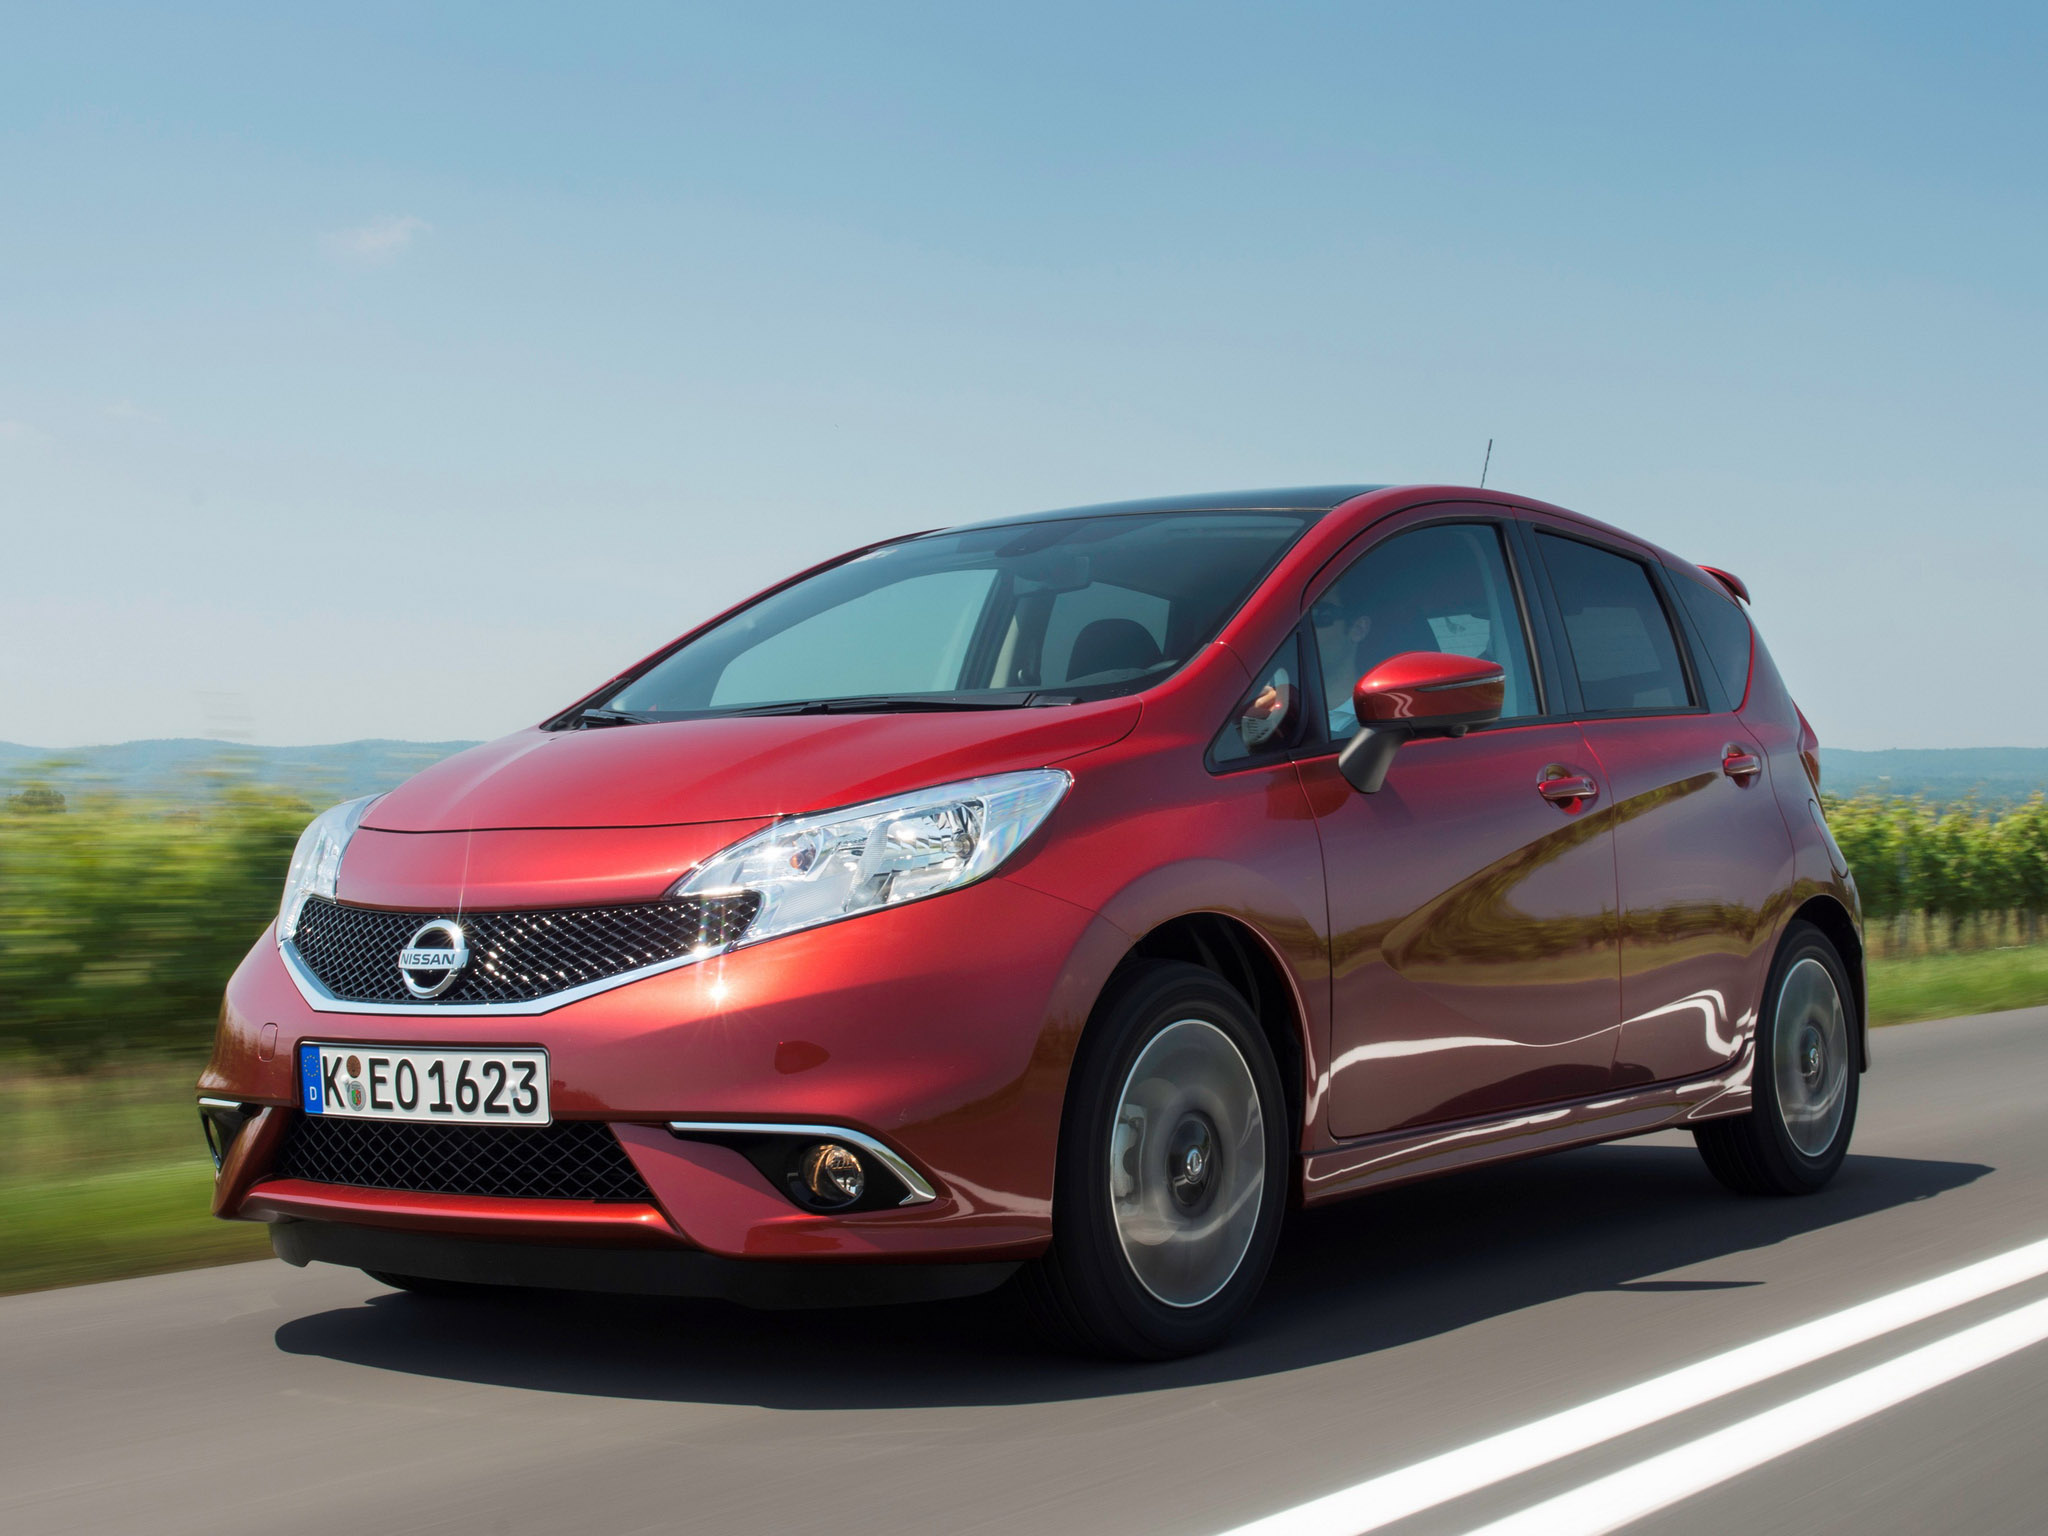 2013 nissan note ii pictures information and specs. Black Bedroom Furniture Sets. Home Design Ideas